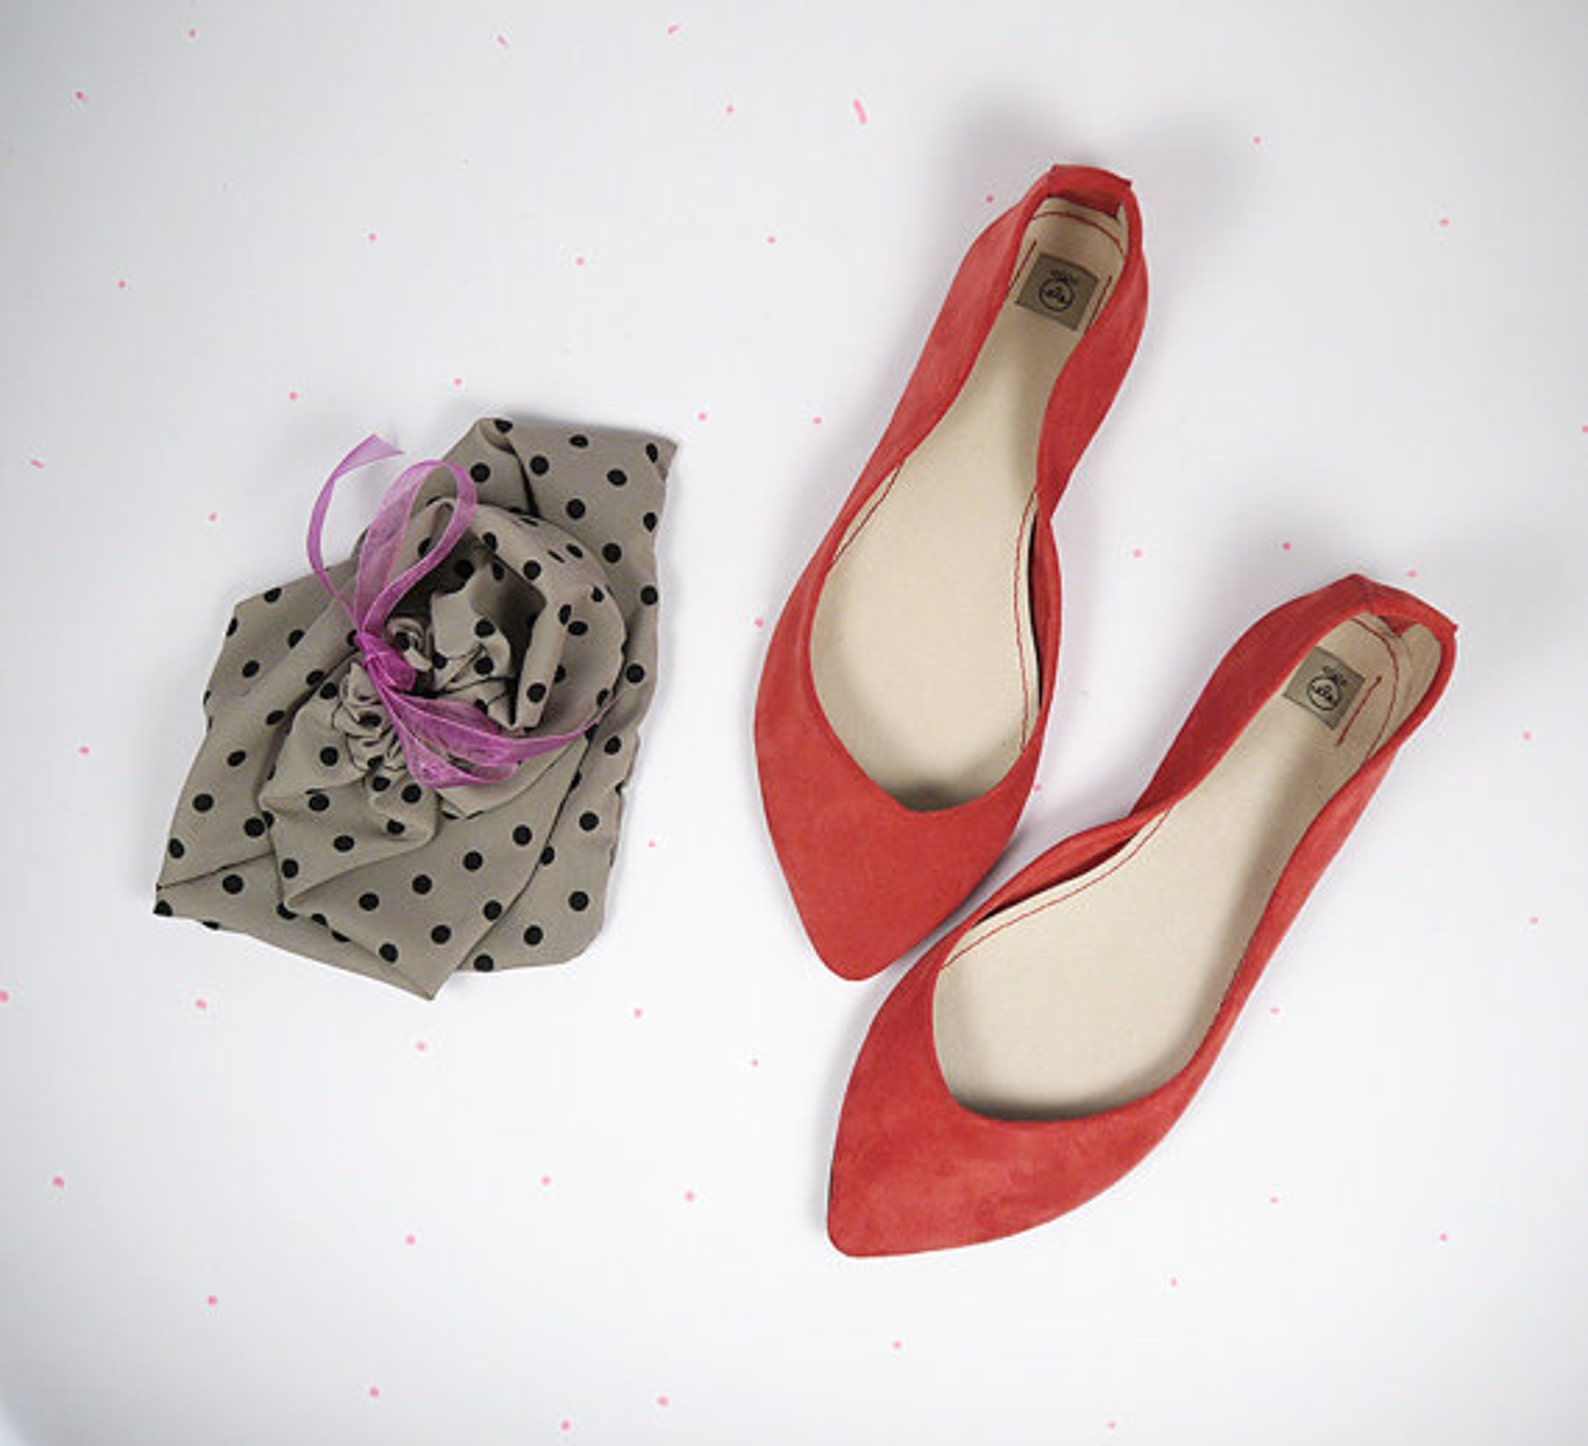 red ballet shoes. pointy shoes. ballet flats. pointy red shoes. red leather shoes. handmade ballet flats. handmade shoes. red po